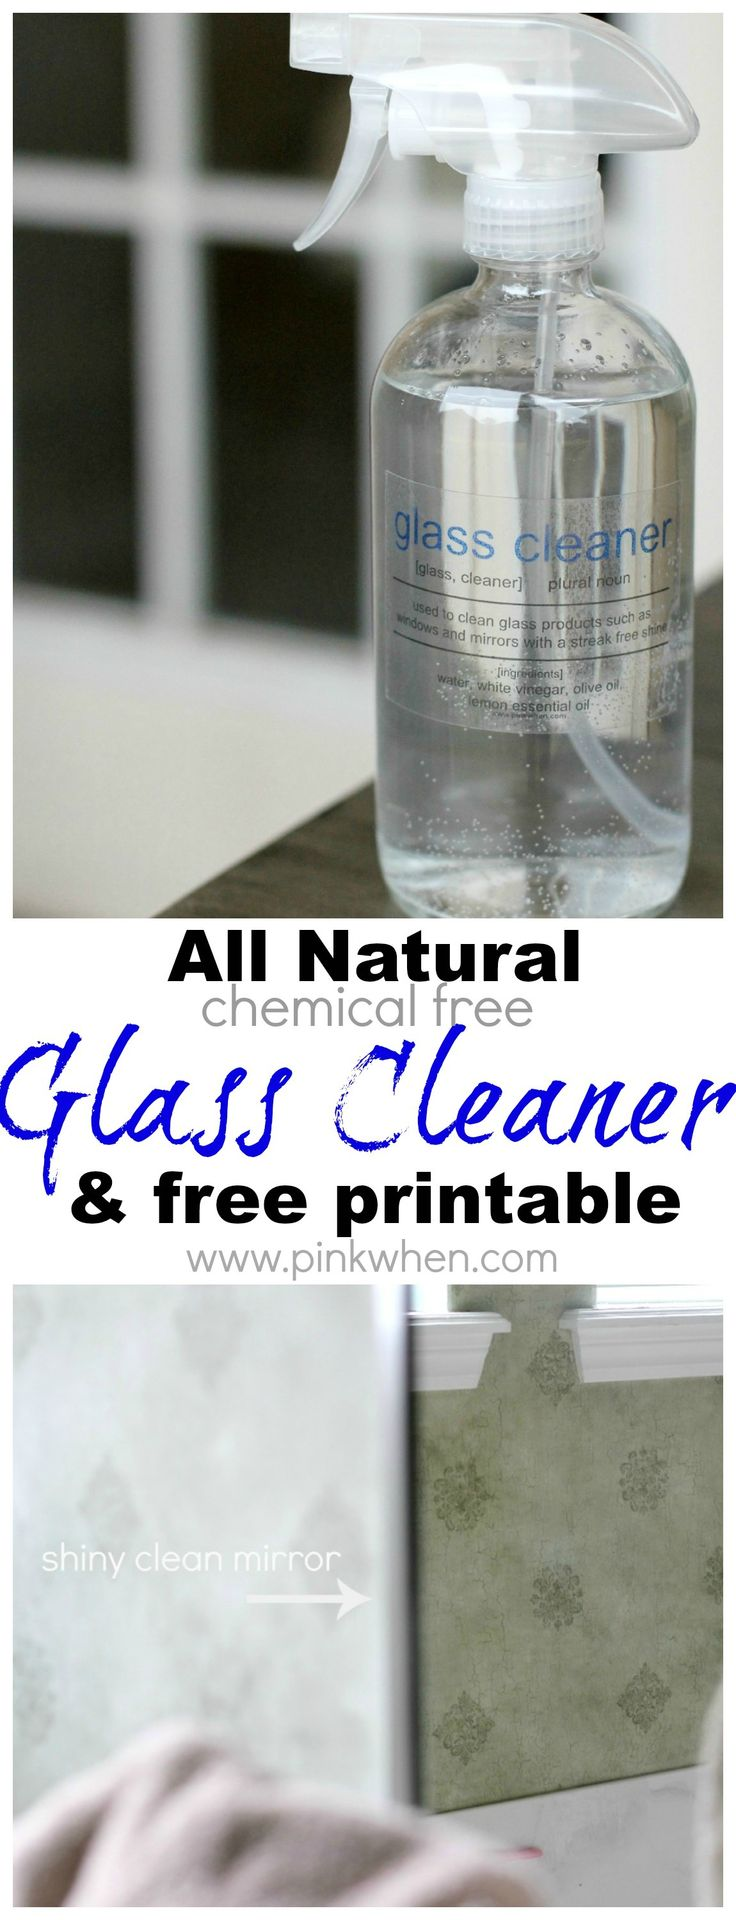 This is one of my favorite cleaners to date! All natural chemical free glass cleaner.